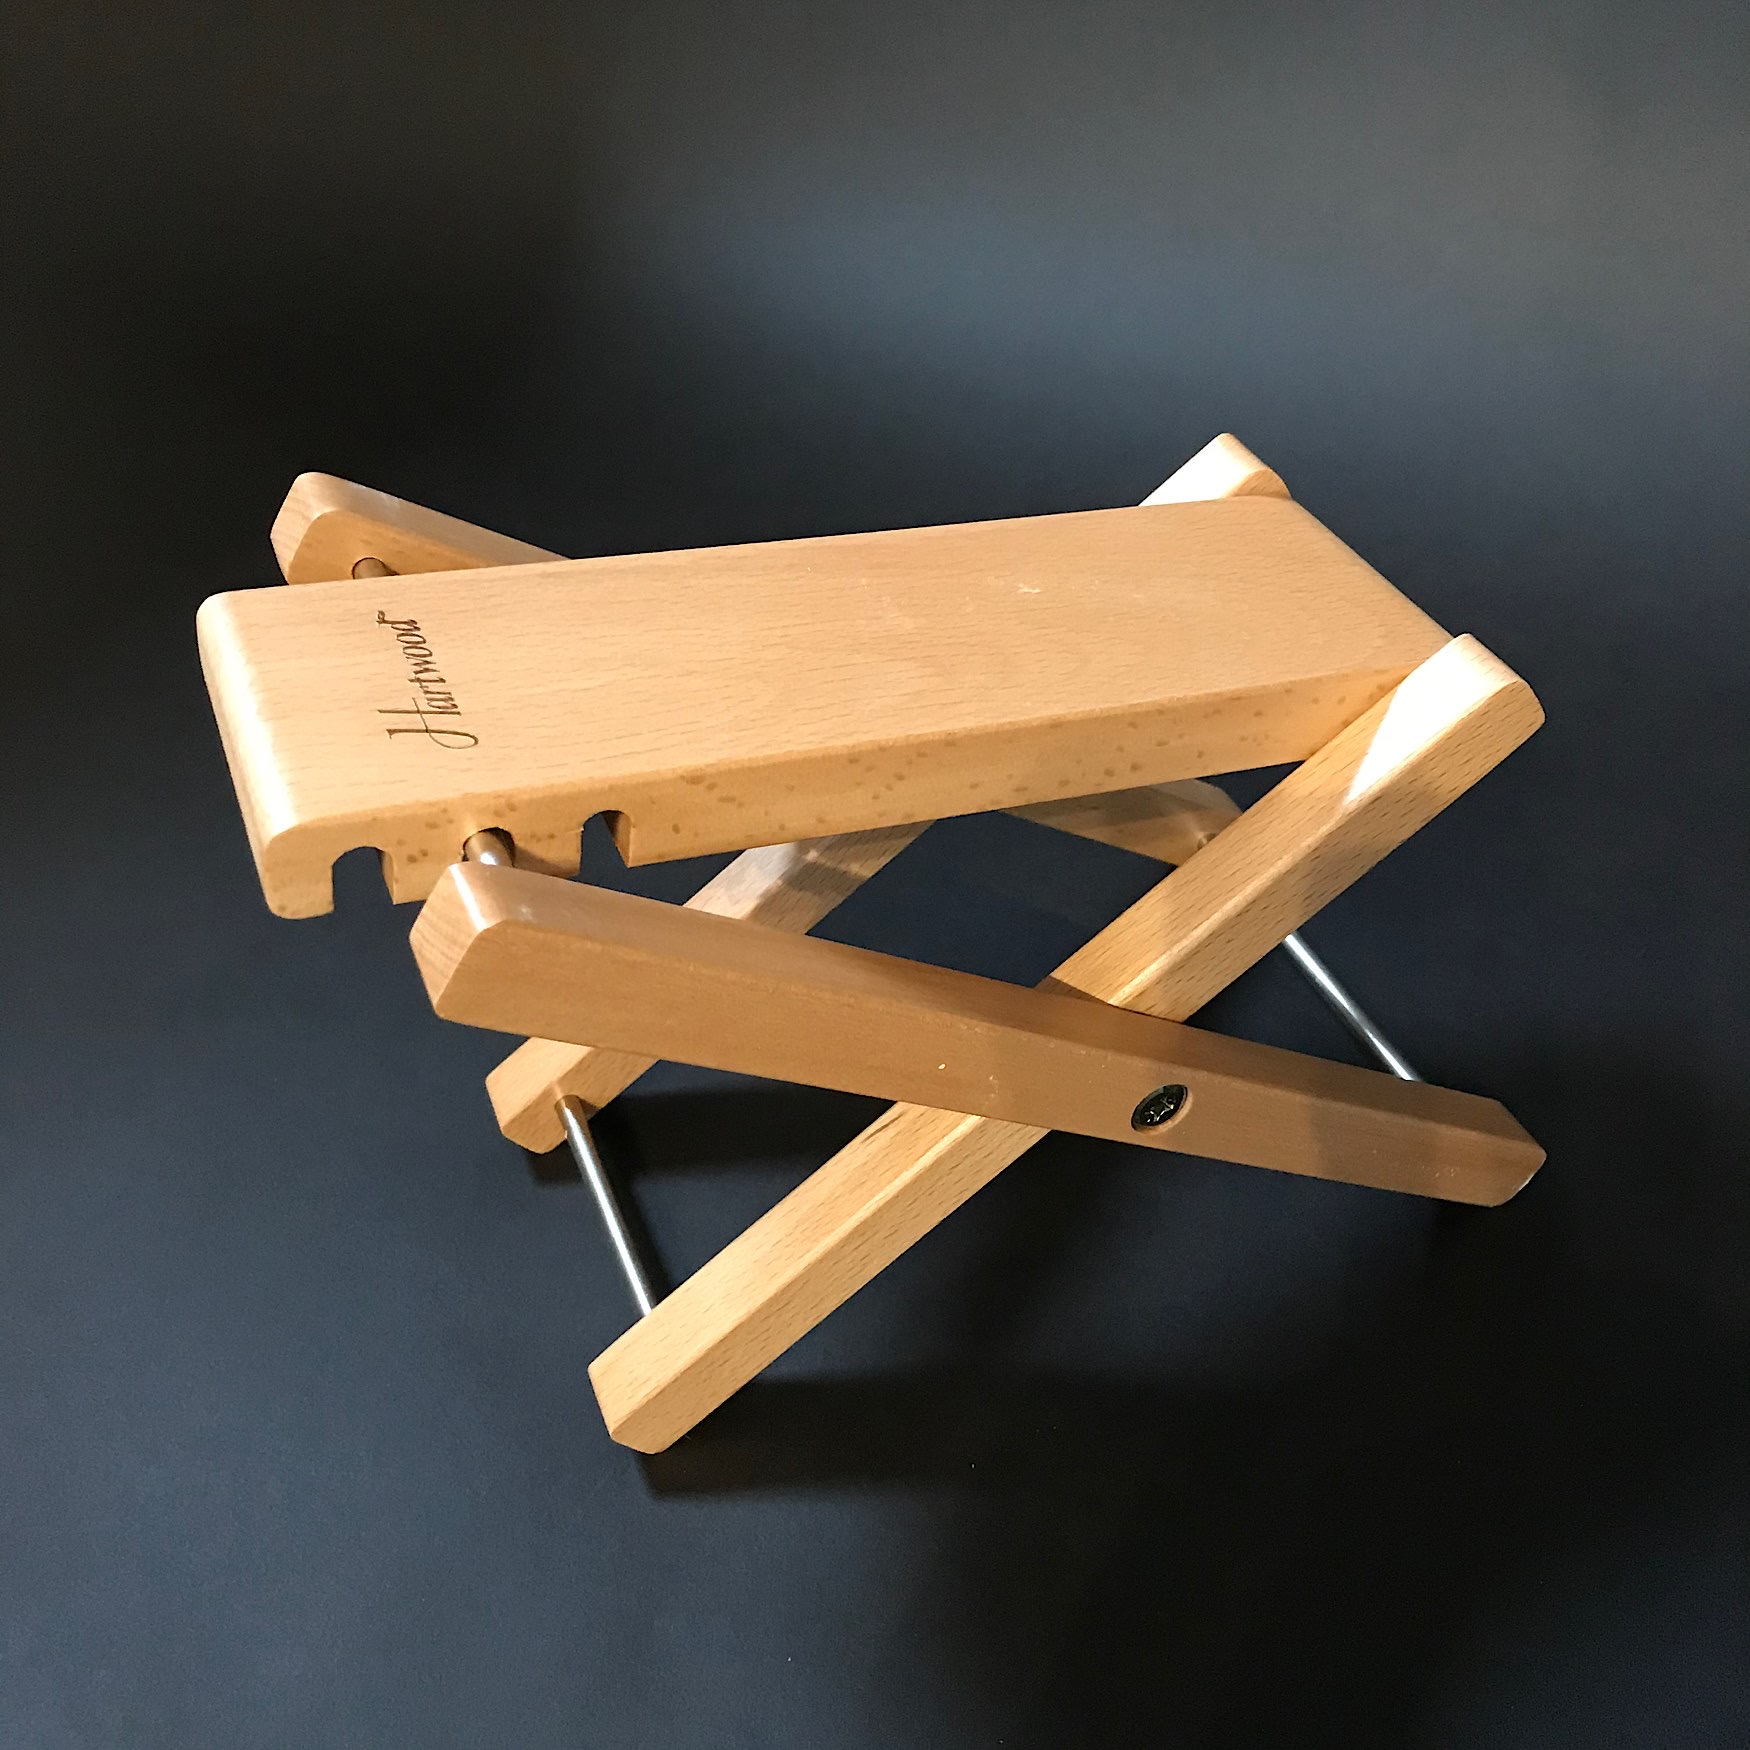 Guitarist's Folding Wooden Footstool - New Stock